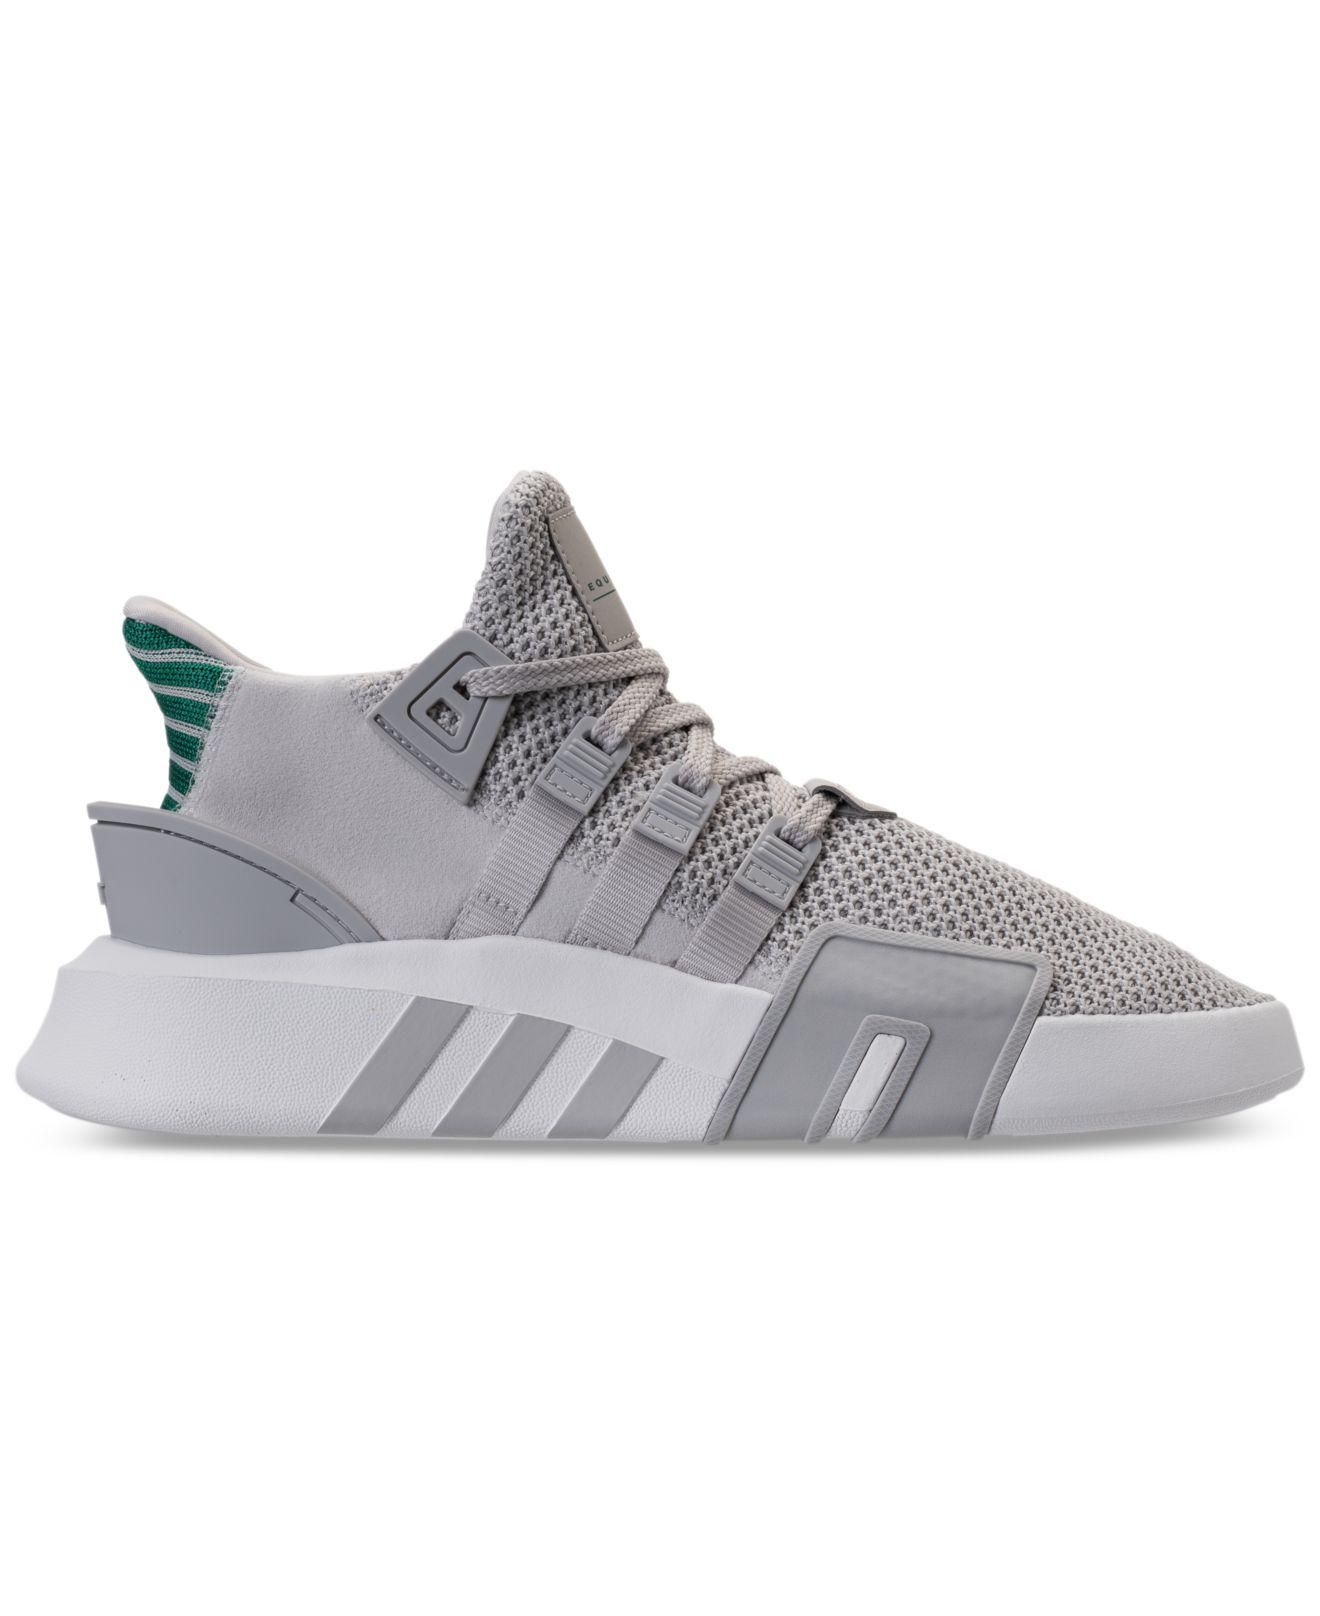 829174b6e2d7 Lyst - adidas Originals Eqt Knit Og Basketball Sneakers From Finish ...